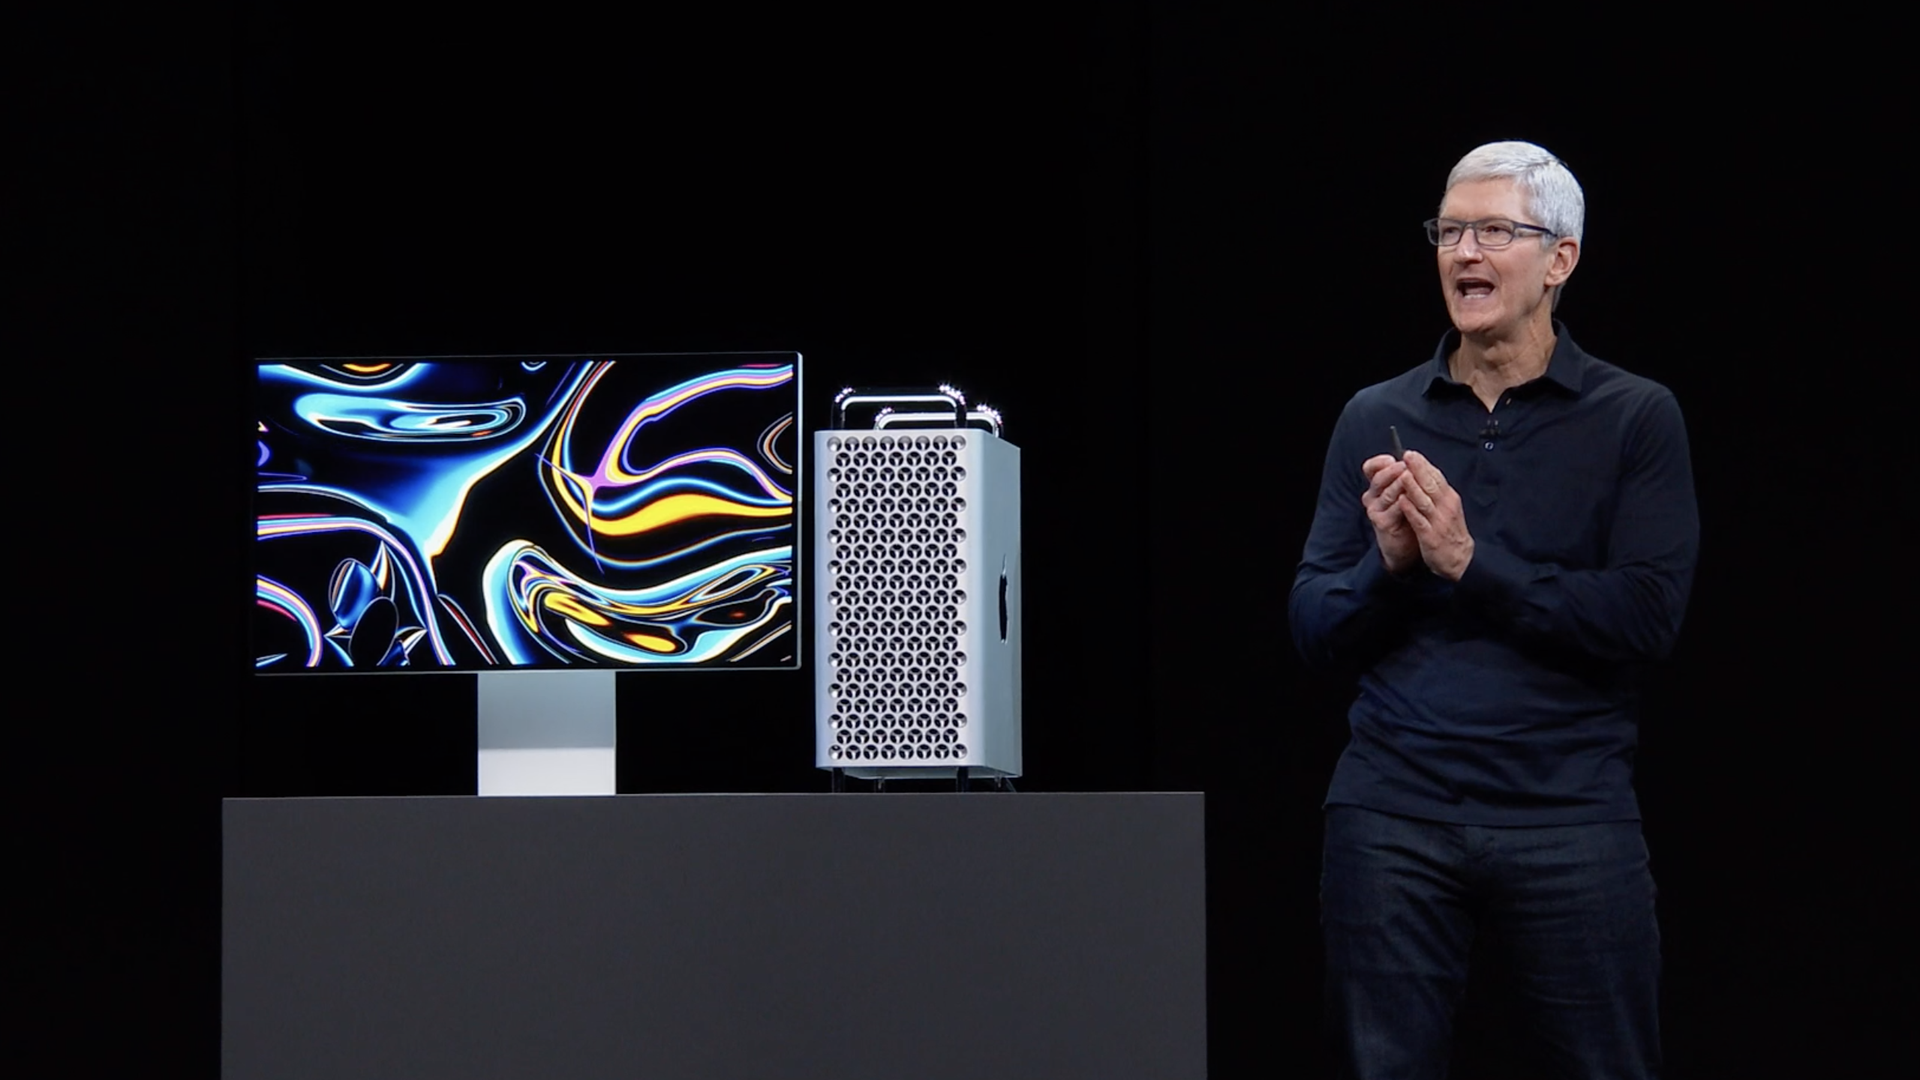 Apple CEO Tim Cook standing next to new model Mac Pro